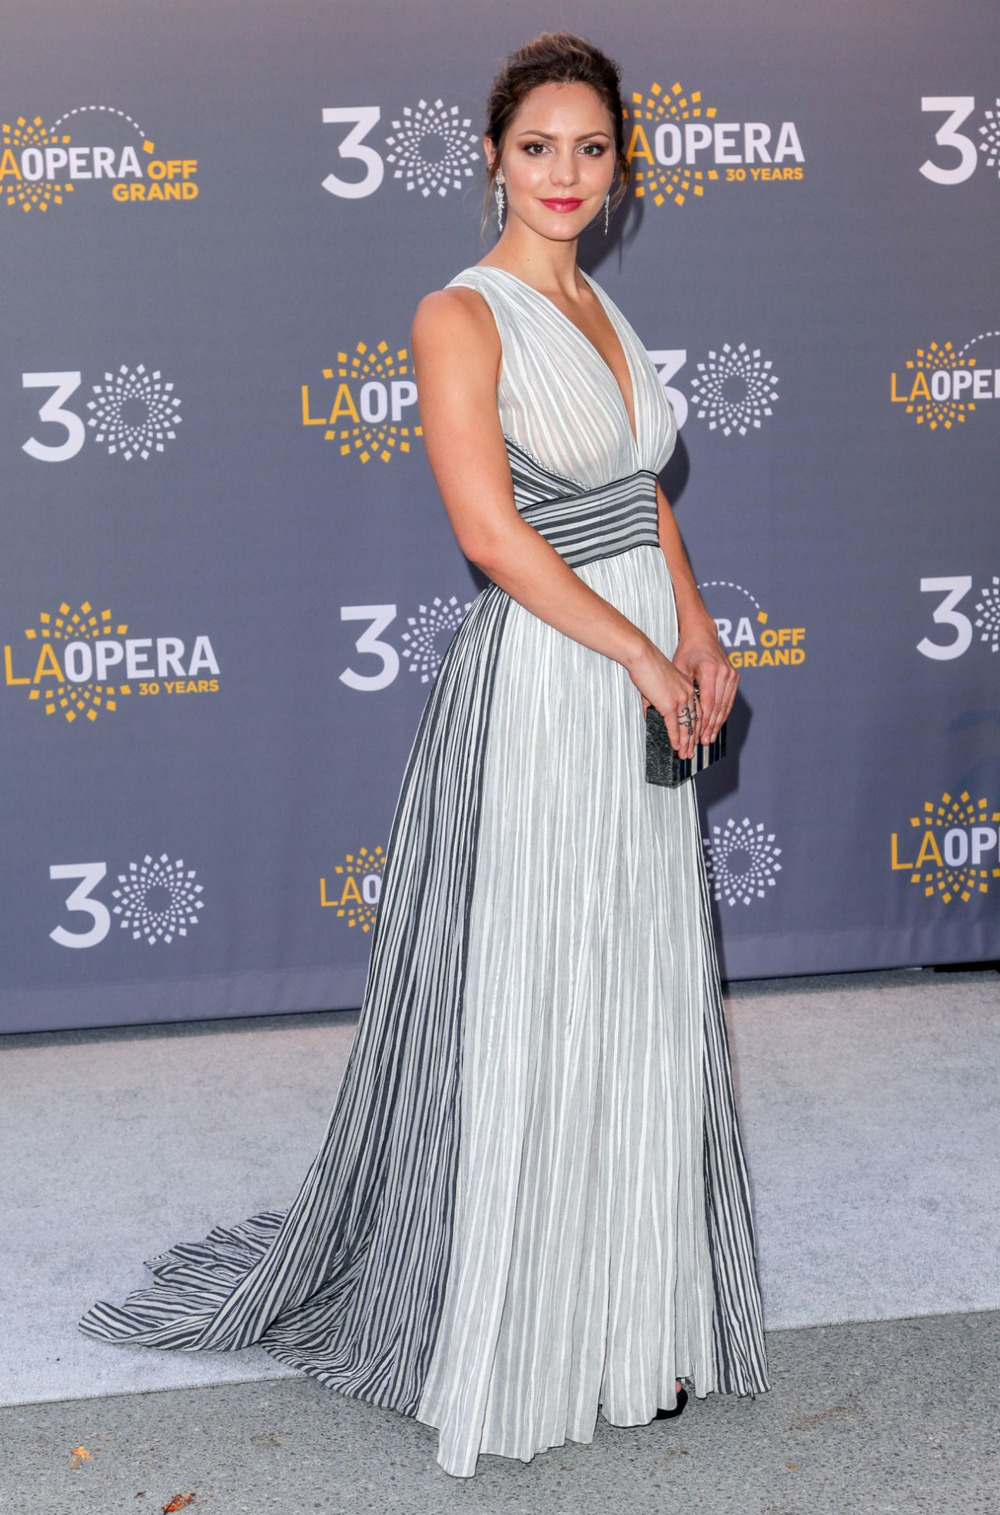 Katharine McPhee at LA Opera's 30th Anniversary Season Opening wearing sophie theallet.jpg